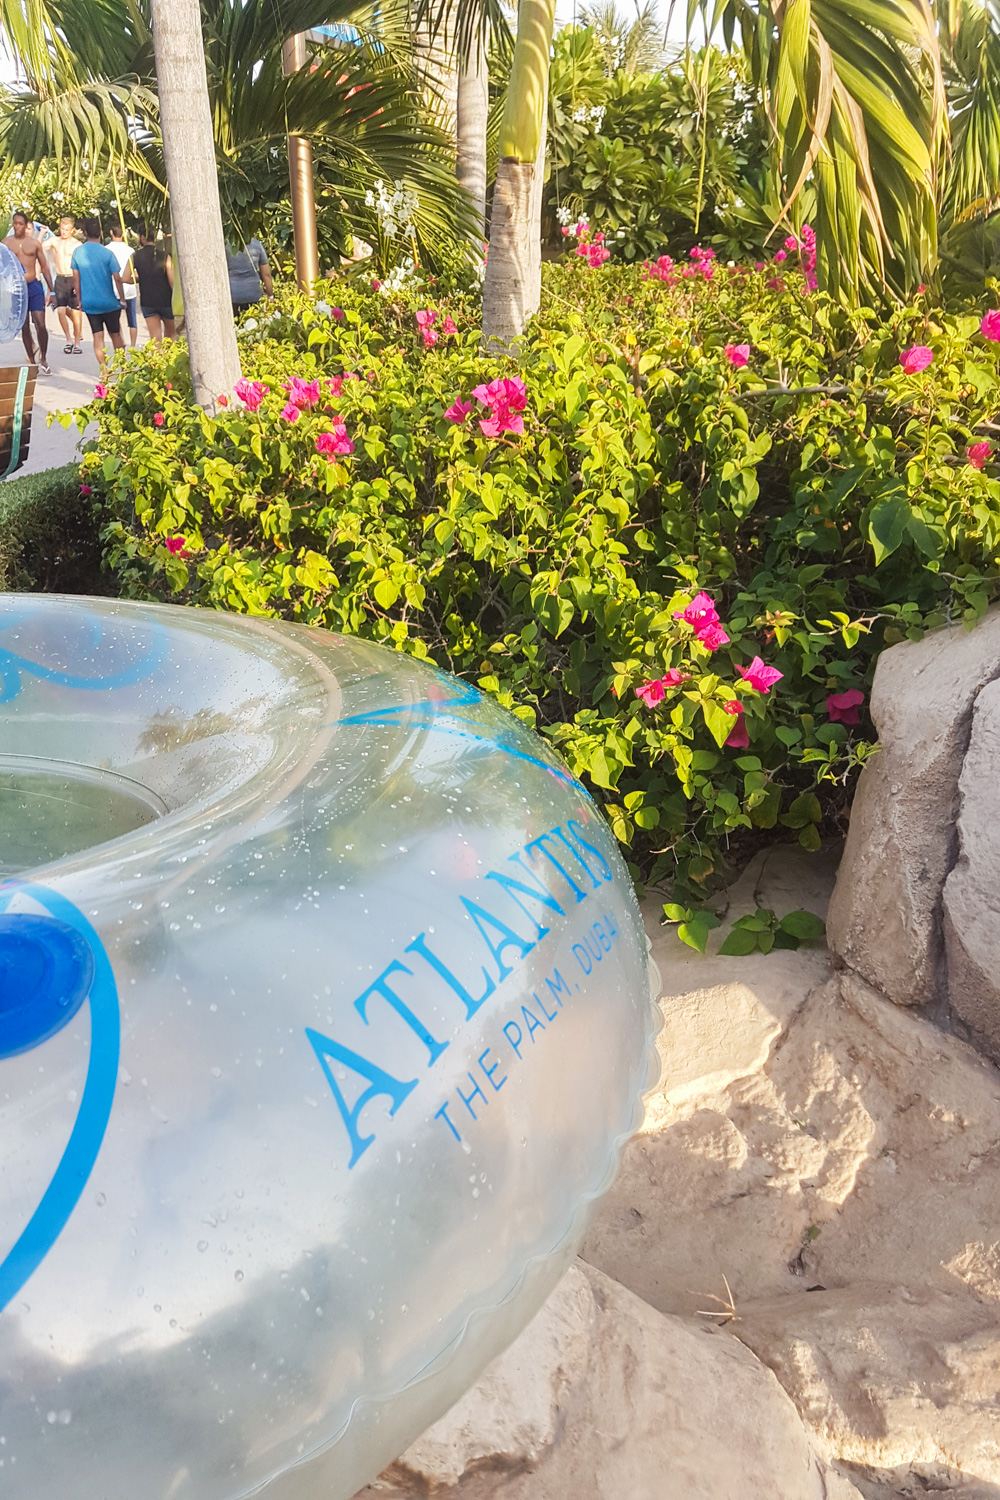 Aquaventure Waterpark, Atlantis the Palm, Dubai